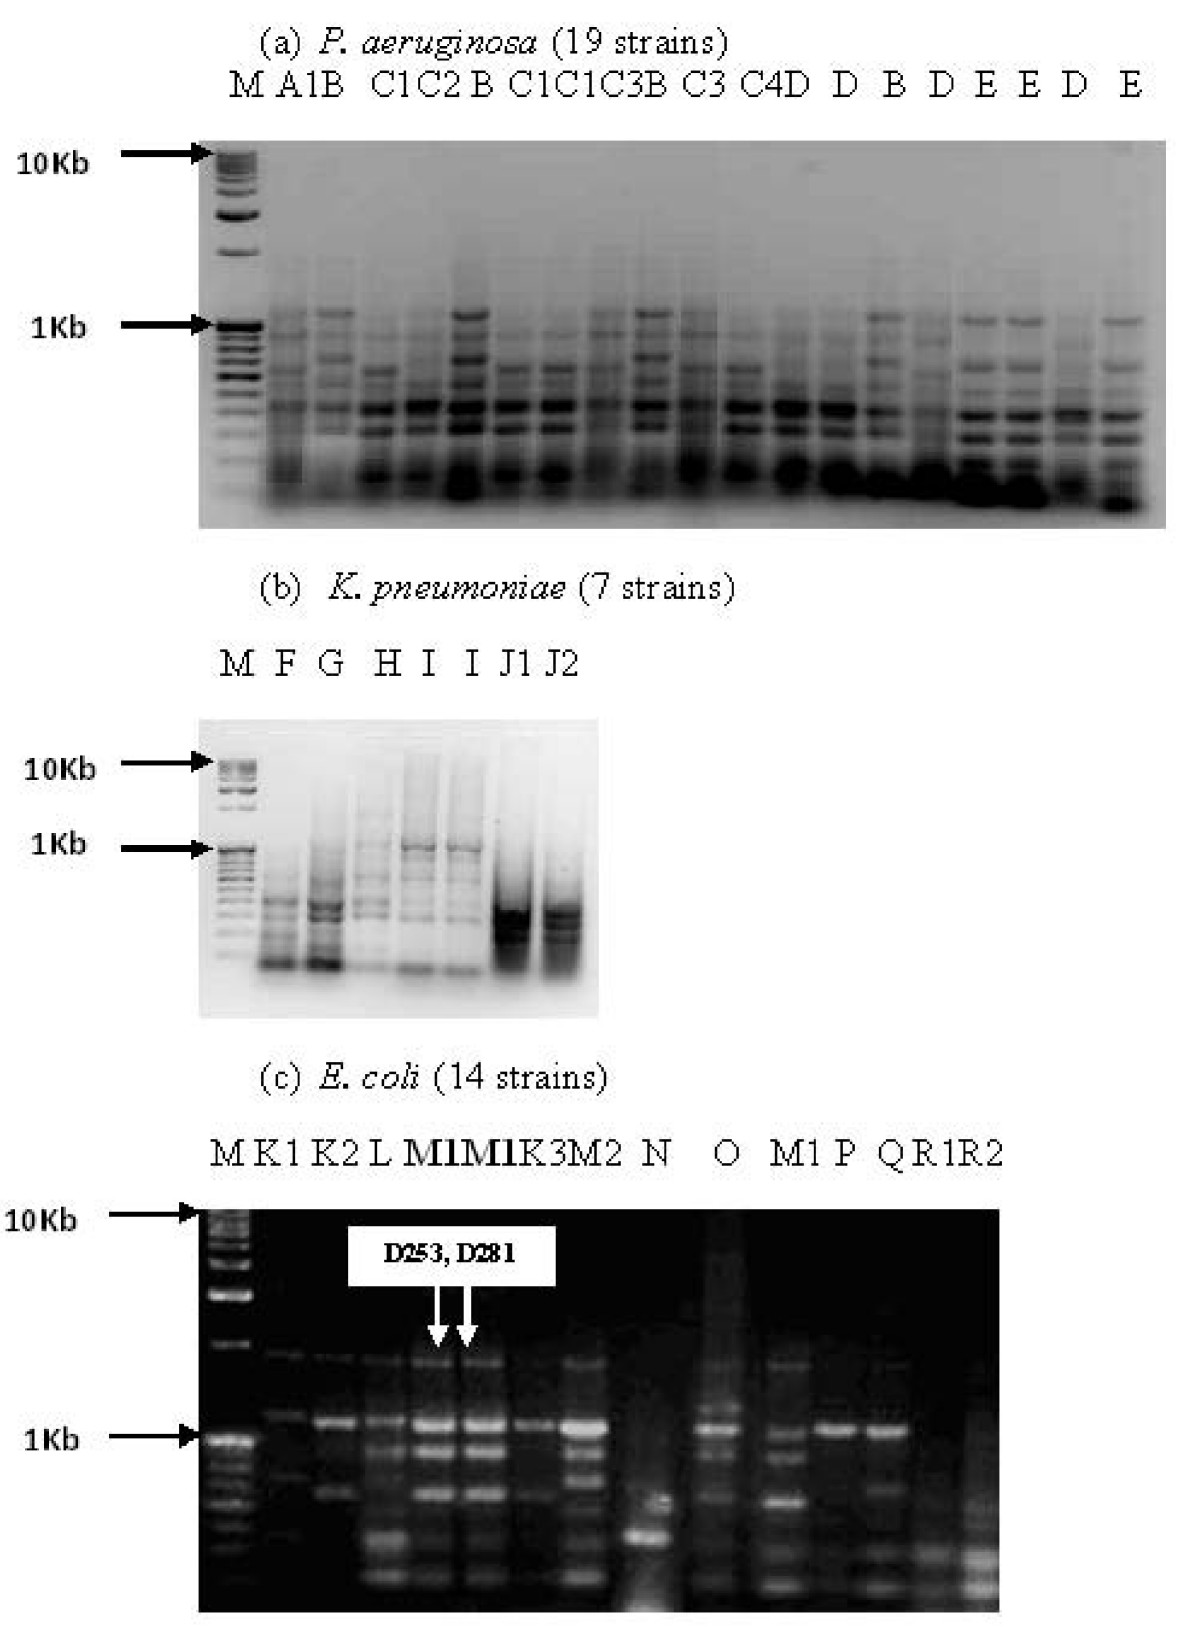 http://static-content.springer.com/image/art%3A10.1186%2F1476-0711-9-2/MediaObjects/12941_2009_Article_174_Fig2_HTML.jpg